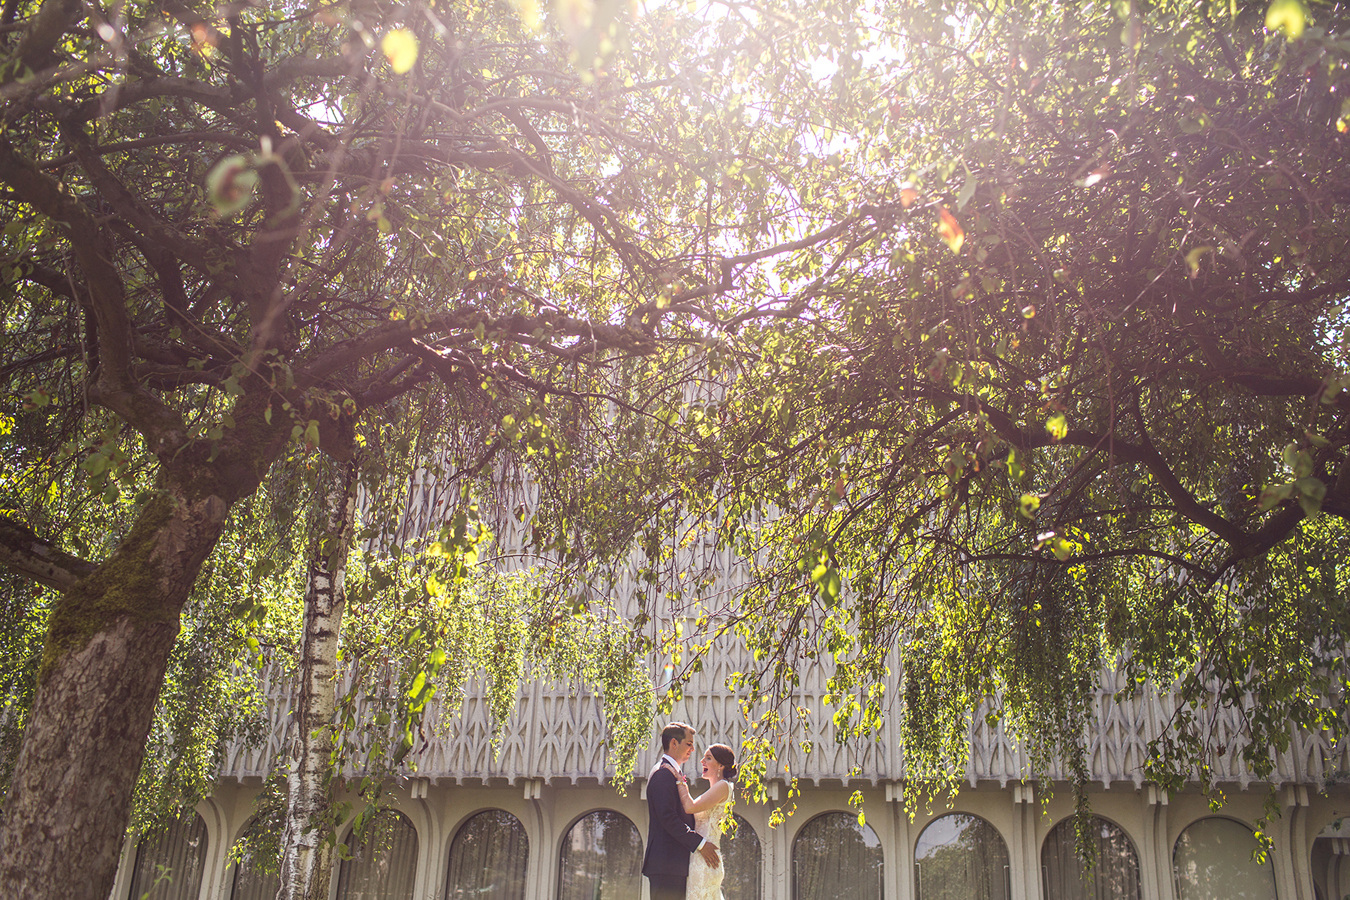 newlyweds share a moment of joy underneath willow trees at Vanier Park in Vancouver BC